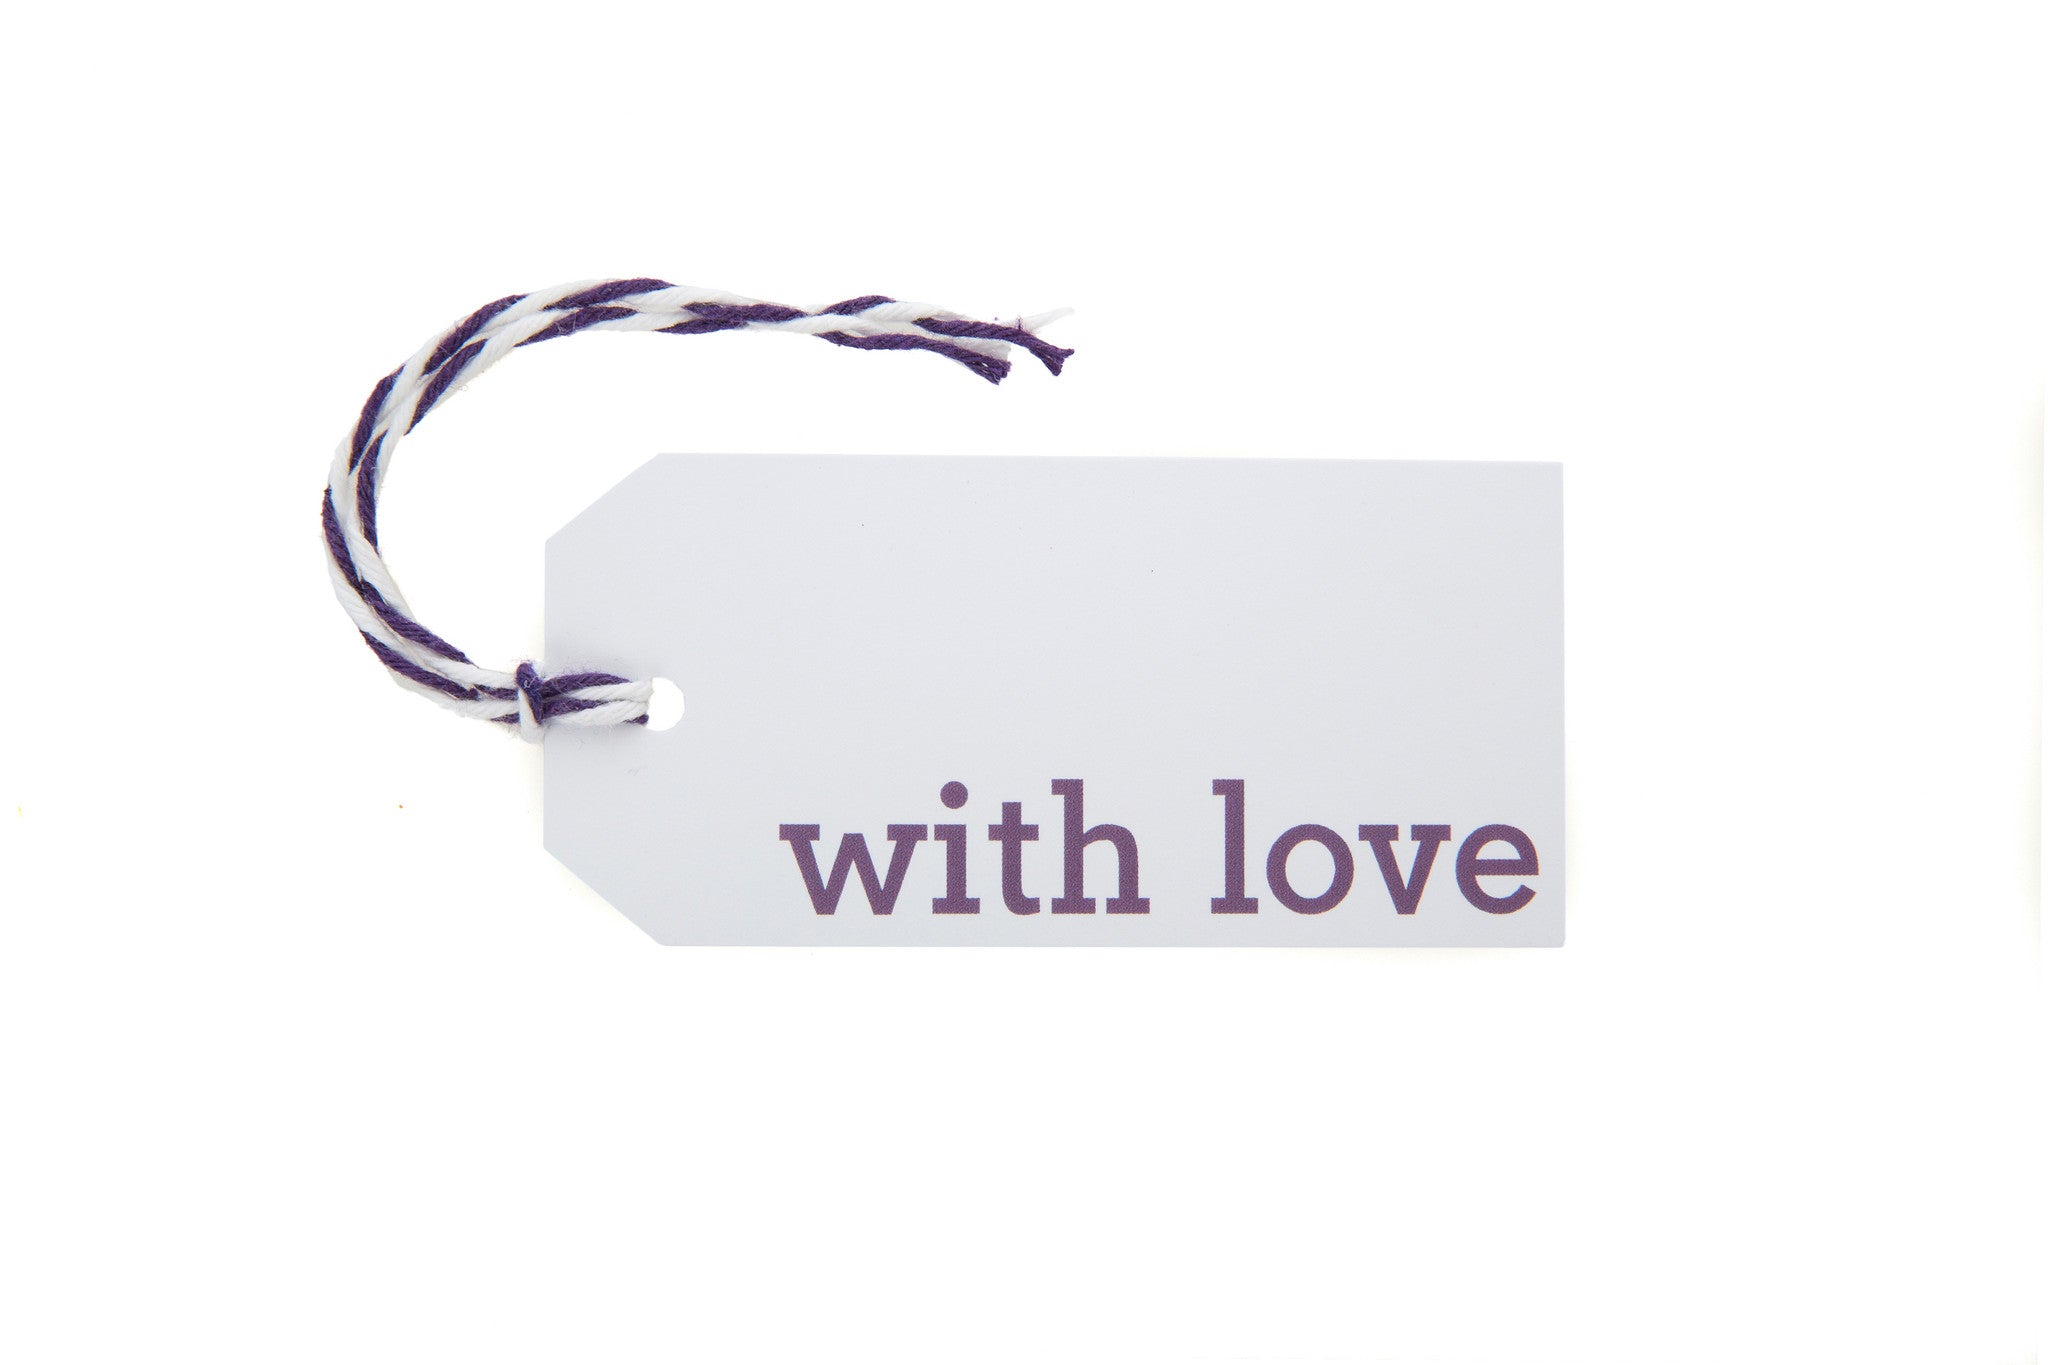 sc 1 st  Sophies Ribbons & 6 White With Love gift tags printed in purple - Sophies Ribbons